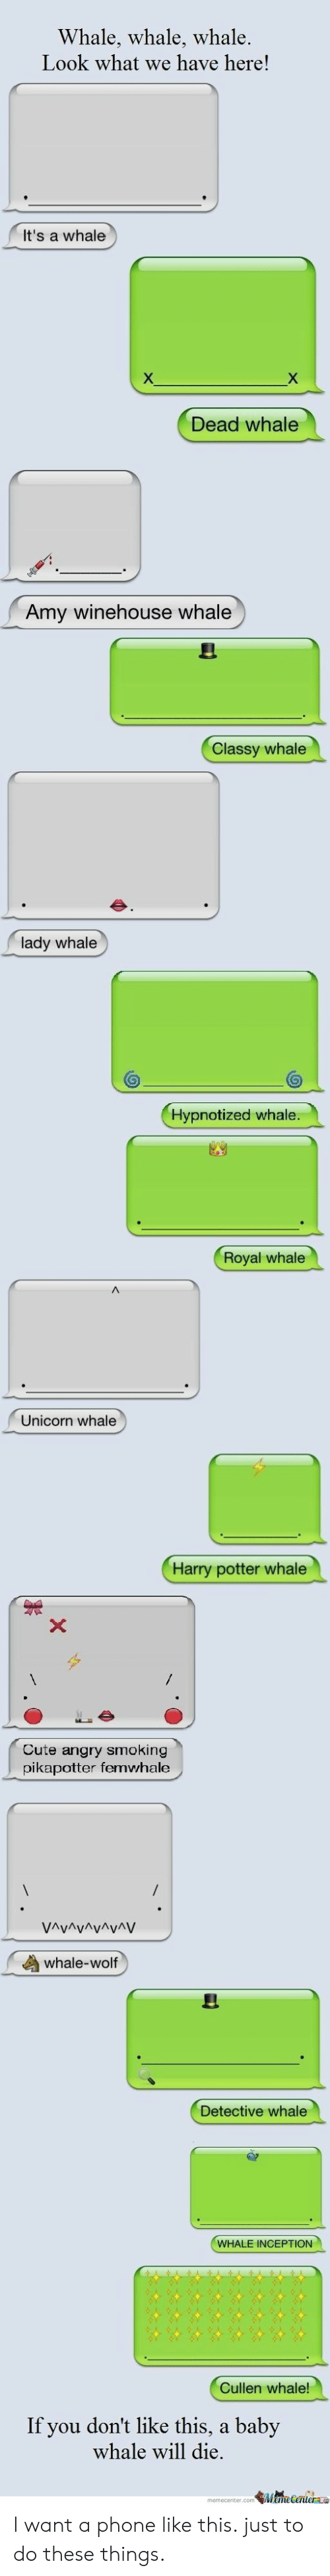 Cute, Harry Potter, and Inception: Whale, whale, whale.  Look what we have here!  It's a whale  X  Dead whale  Amy winehouse whale  Classy whale  lady whale  Hypnotized whale.  Royal whale  Unicorn whale  Harry potter whale  X  Cute angry smoking  pikapotter femwhale  VAvAvAvAyAV  whale-wolf  Detective whale  WHALE INCEPTION  Cullen whale!  If you don't like this,  baby  whale will die.  MameCentere I want a phone like this. just to do these things.